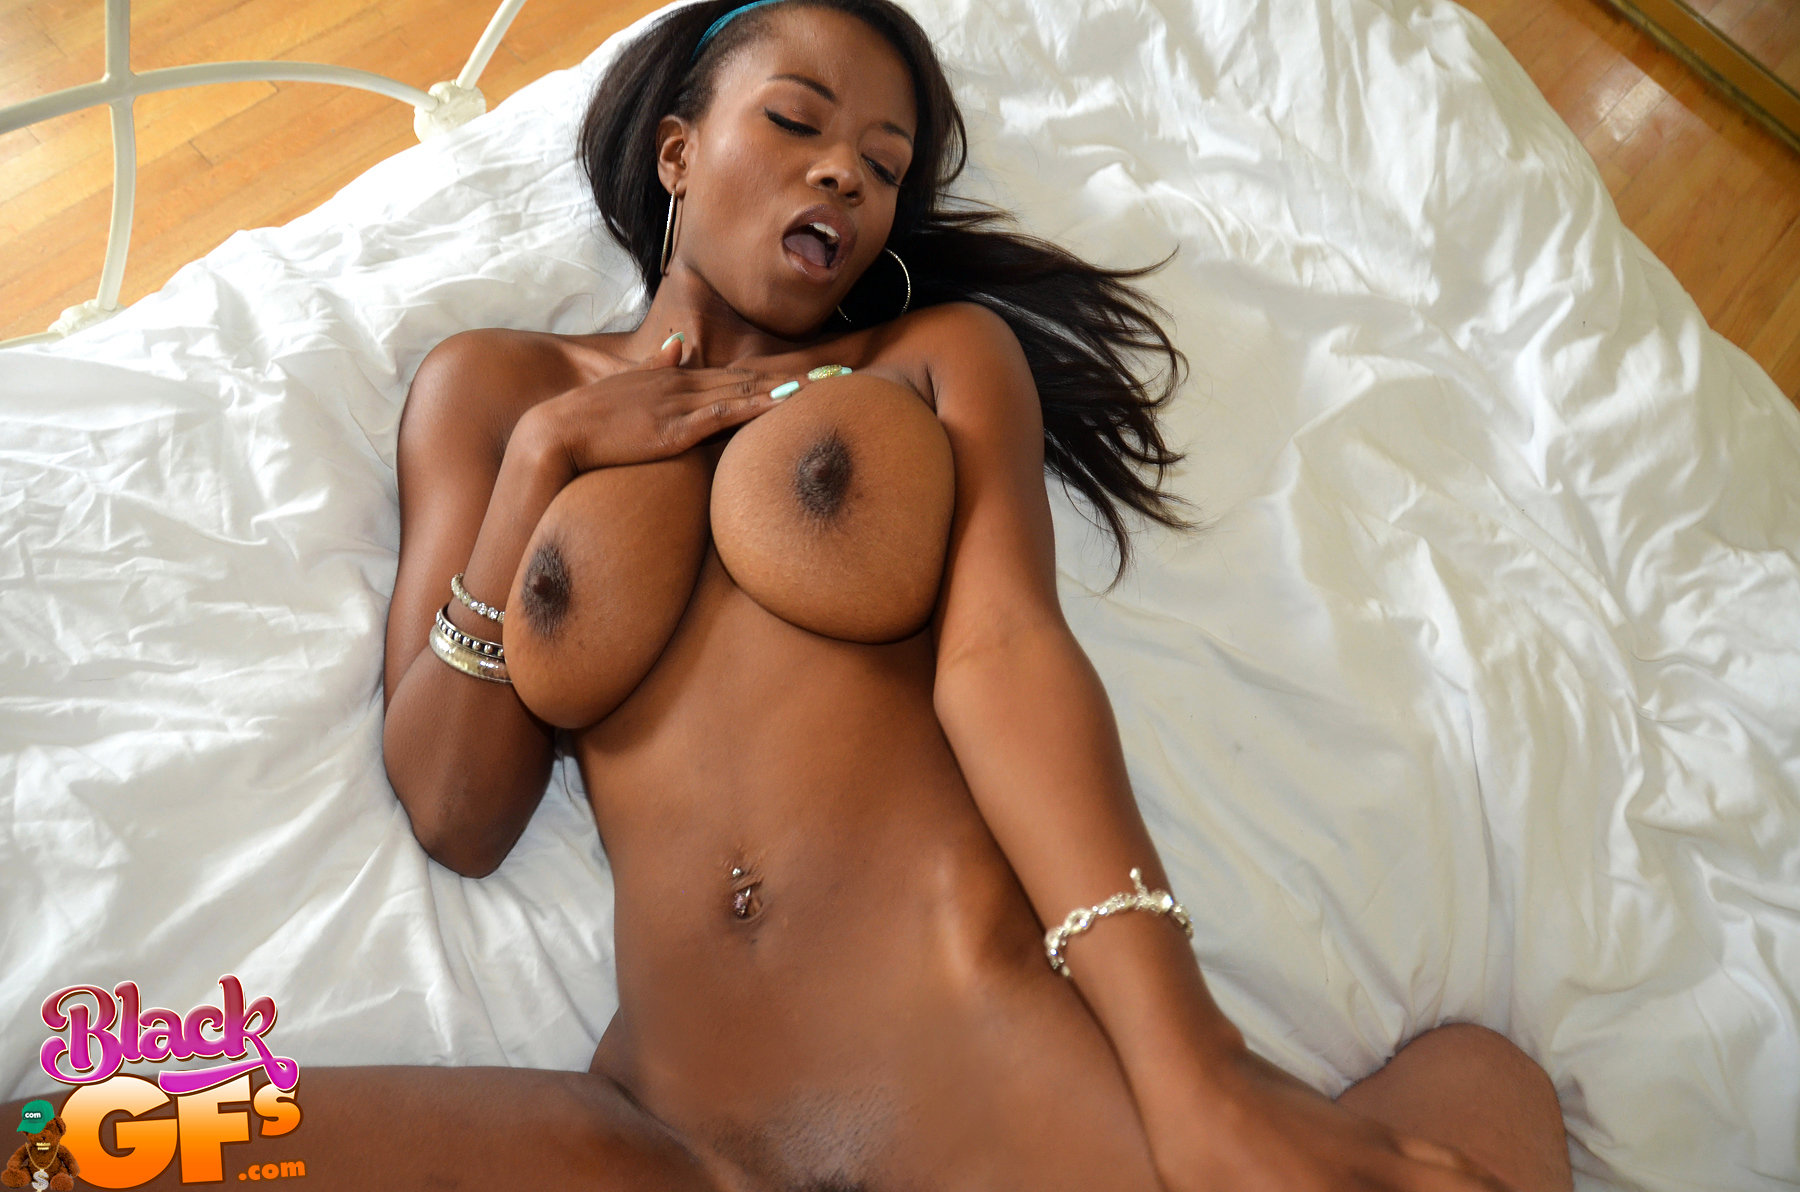 Nacked sexy black girls amusing